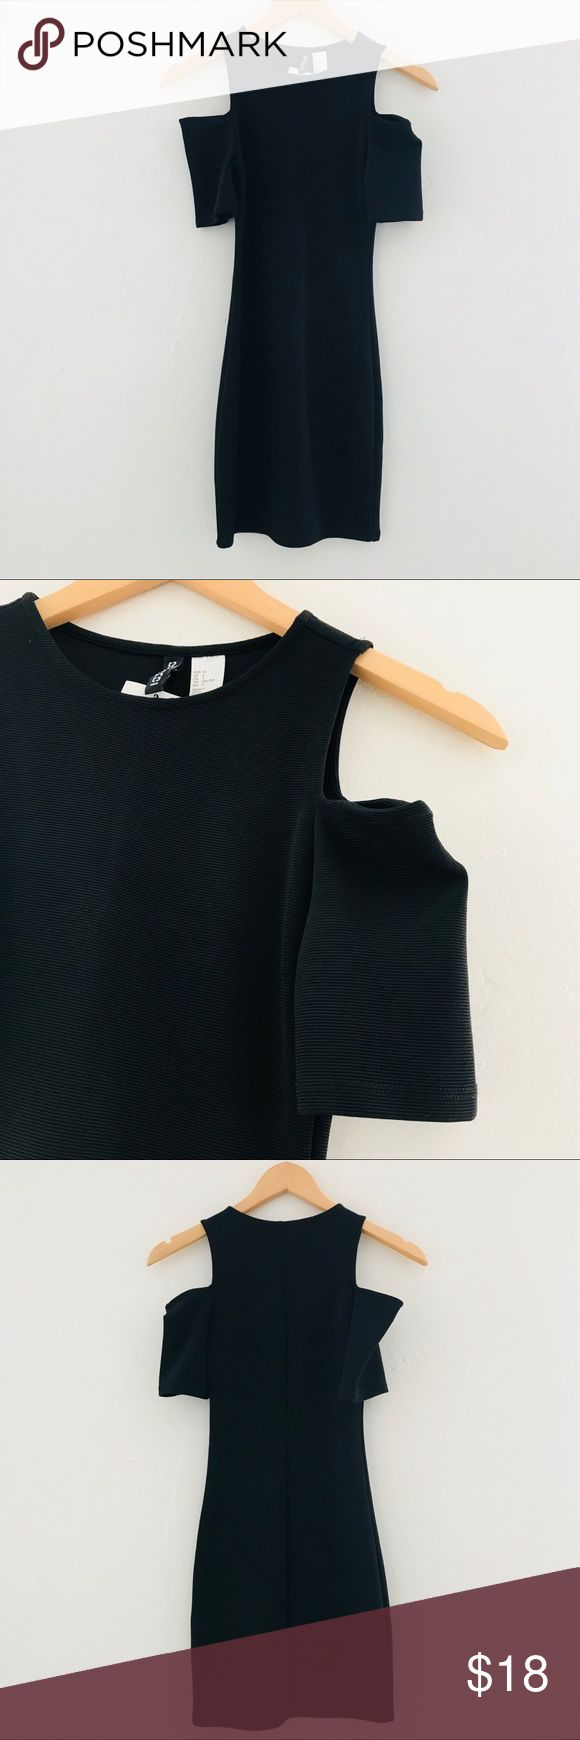 NEW Black Cold Shoulder Dress NWT cute and classic black dress with cold shoulder cut outs and short sleeves. Can be dressed up or dressed down. H&M Dresses Mini